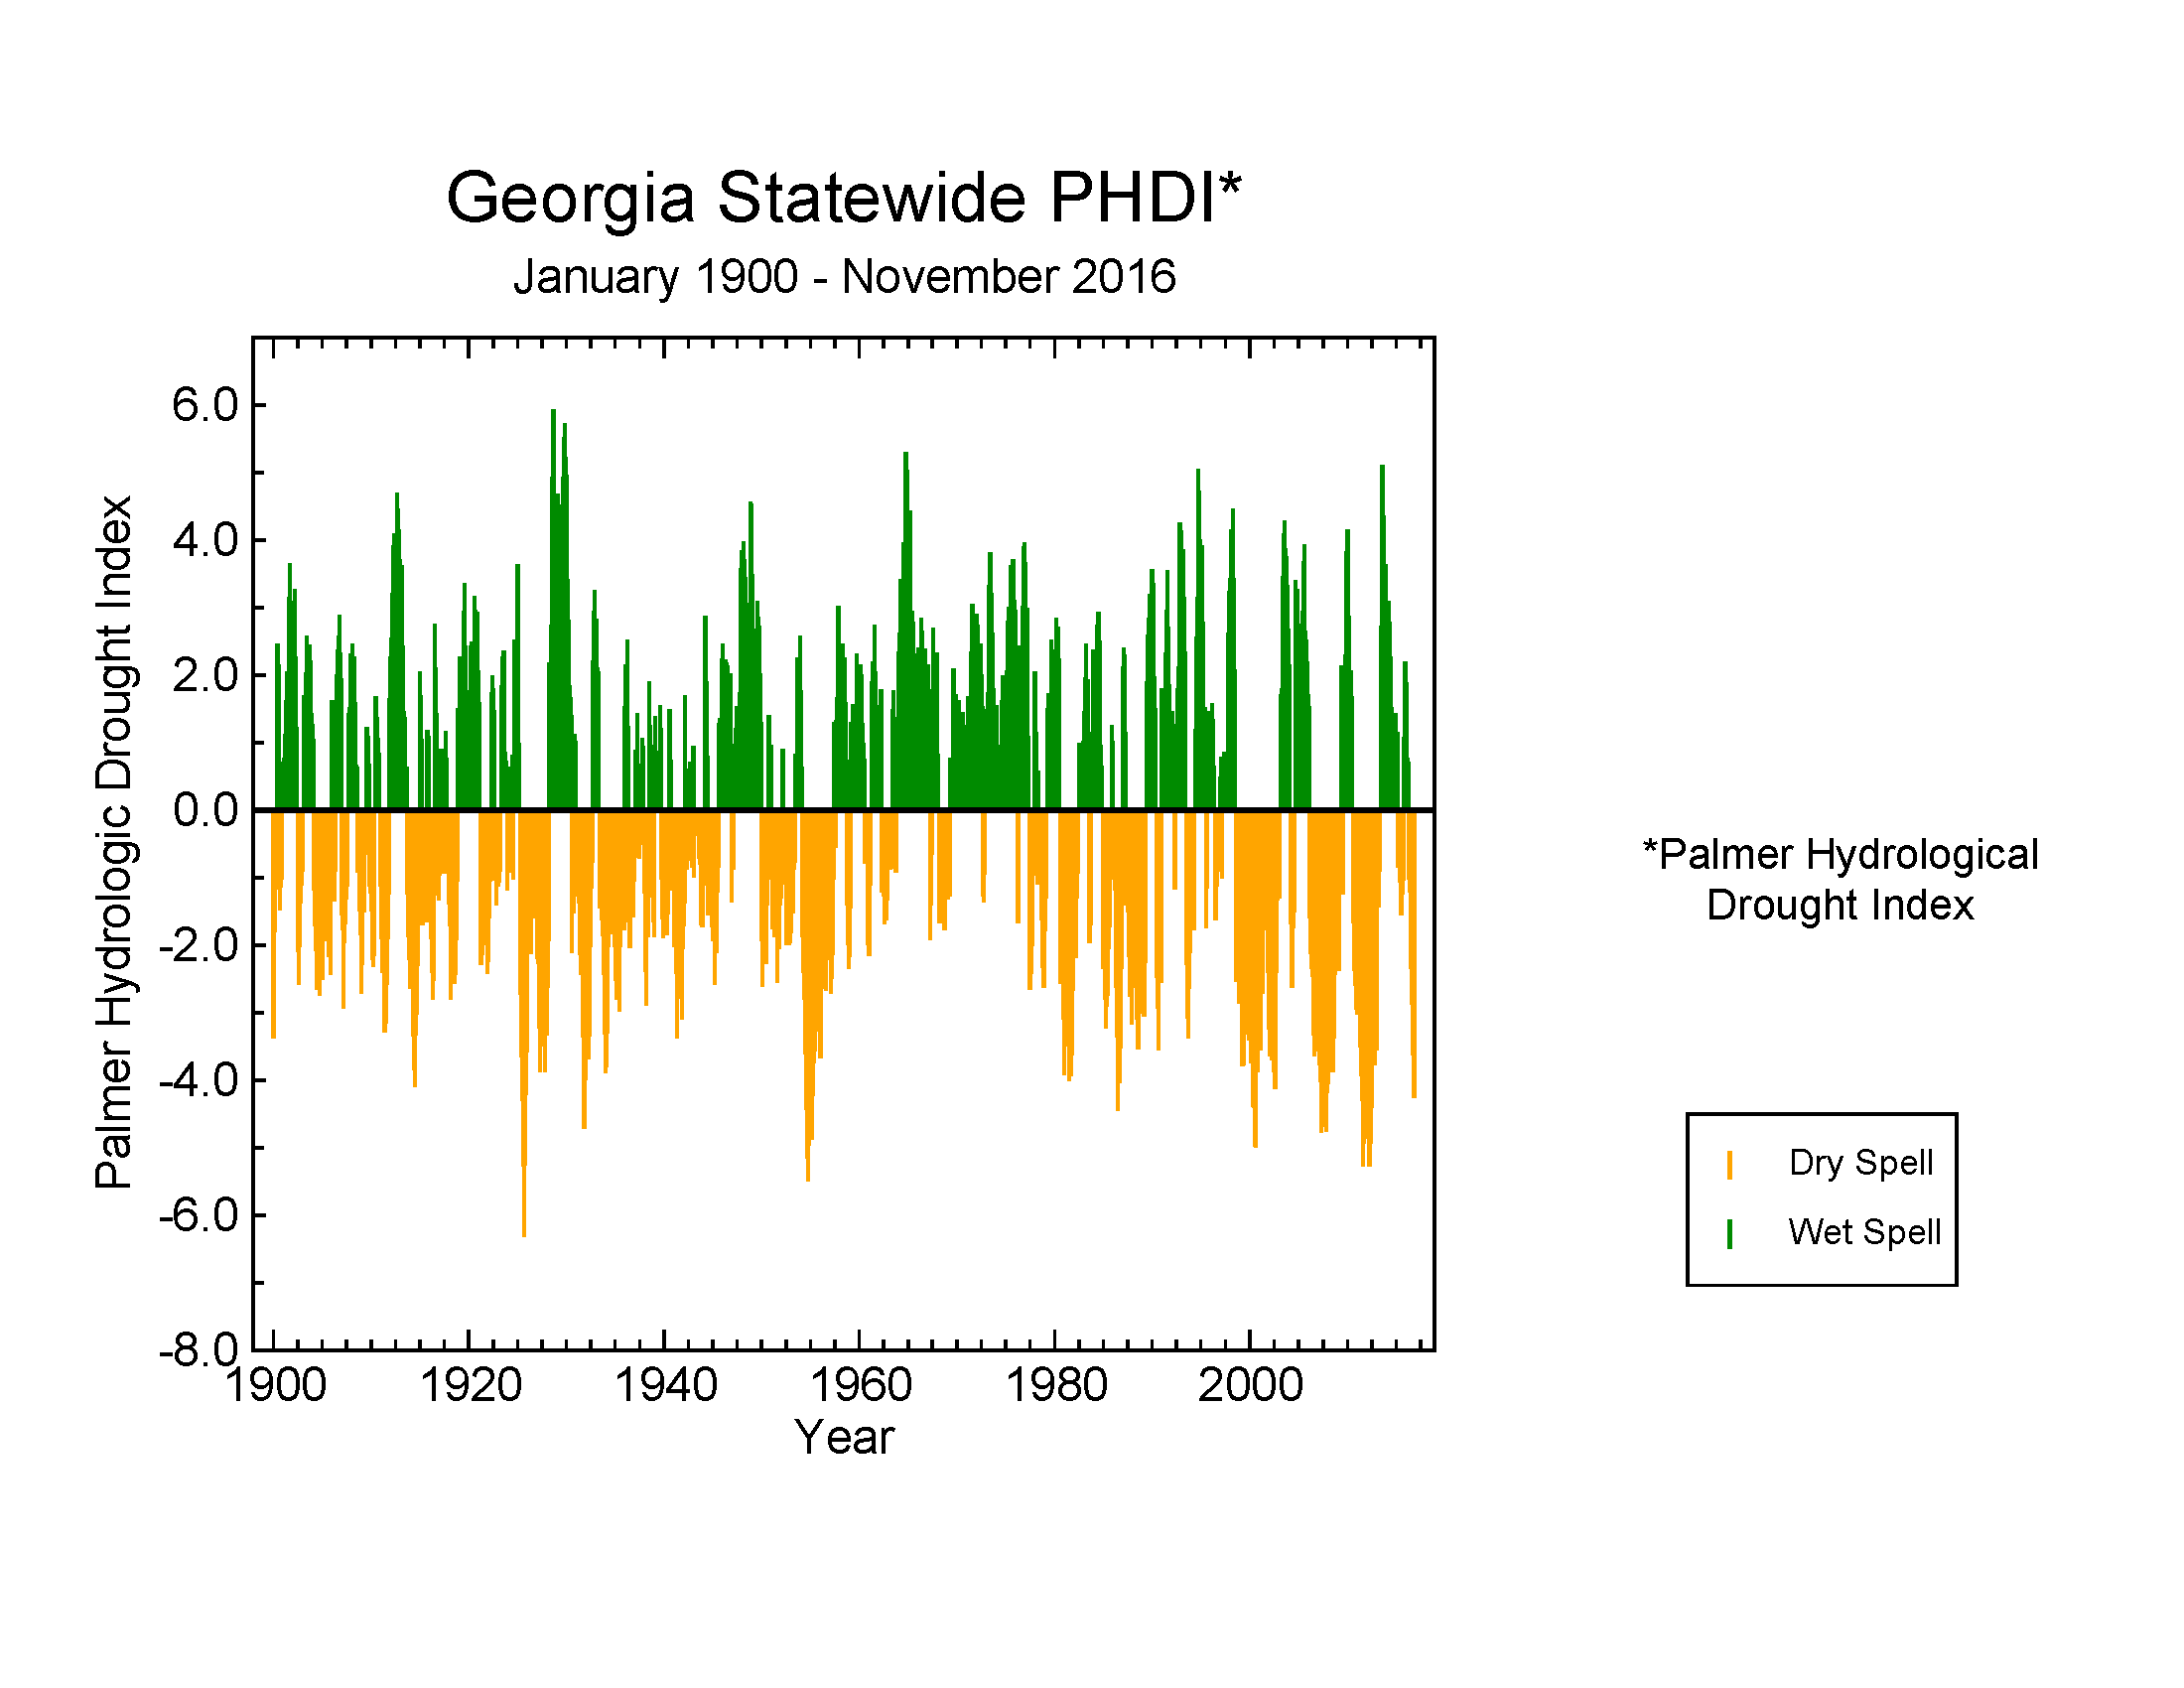 Georgia statewide Palmer Hydrological Drought Index, January 1900-November 2016